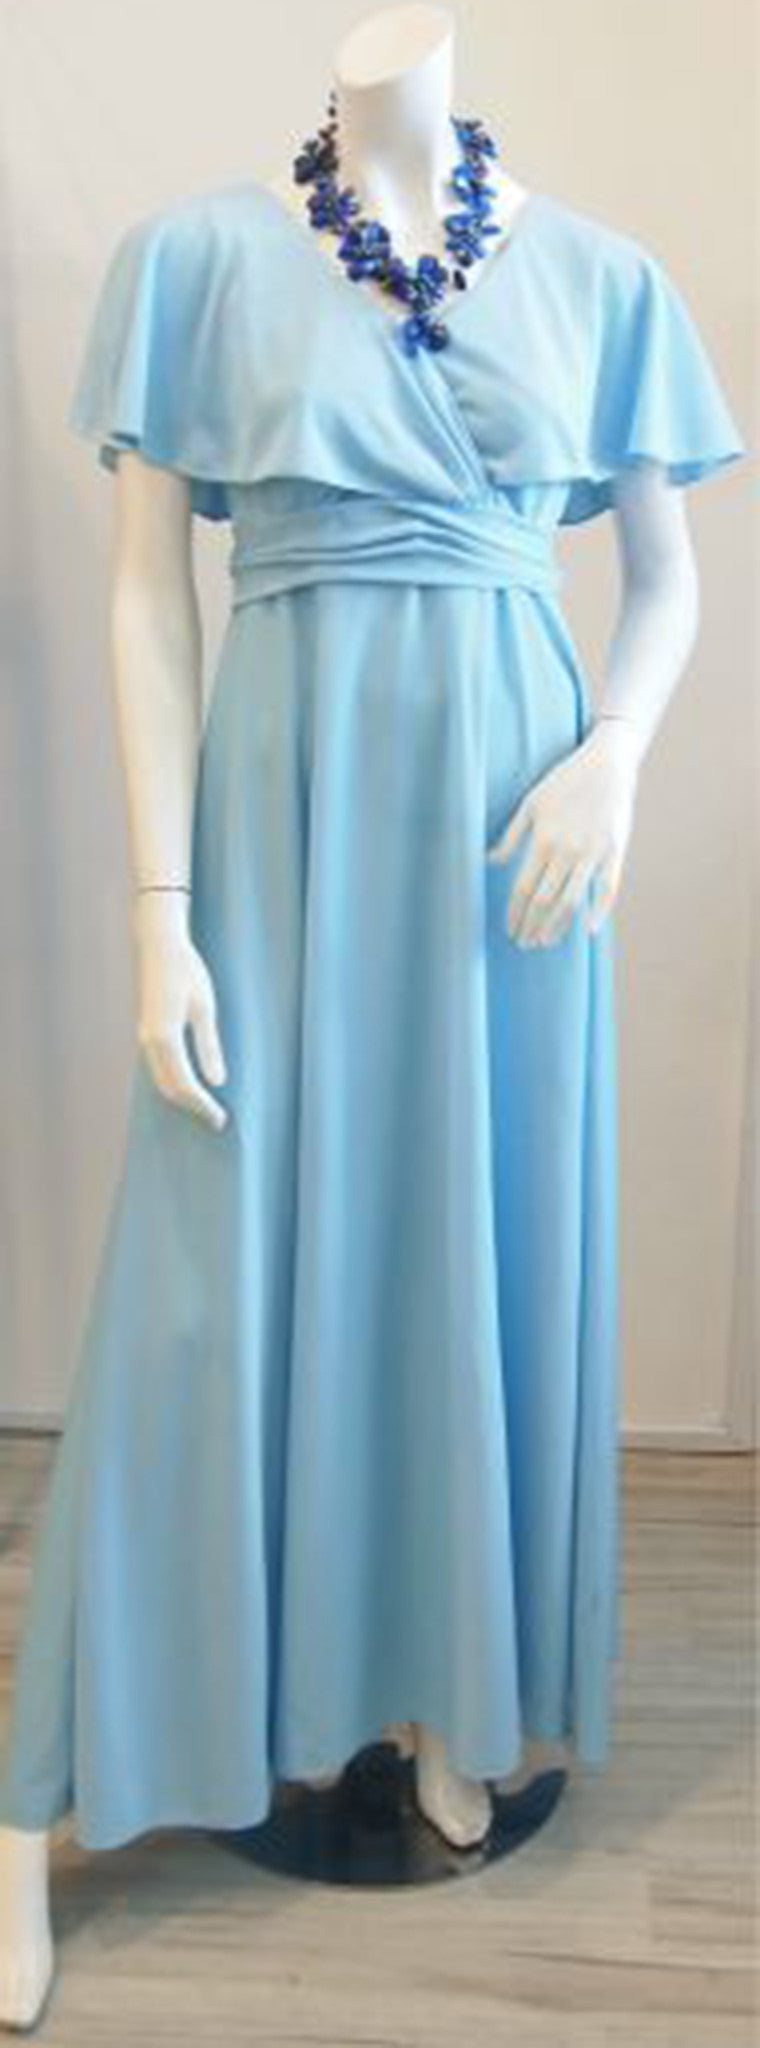 Nothing But Blue Skies Vintage Maxi Dress